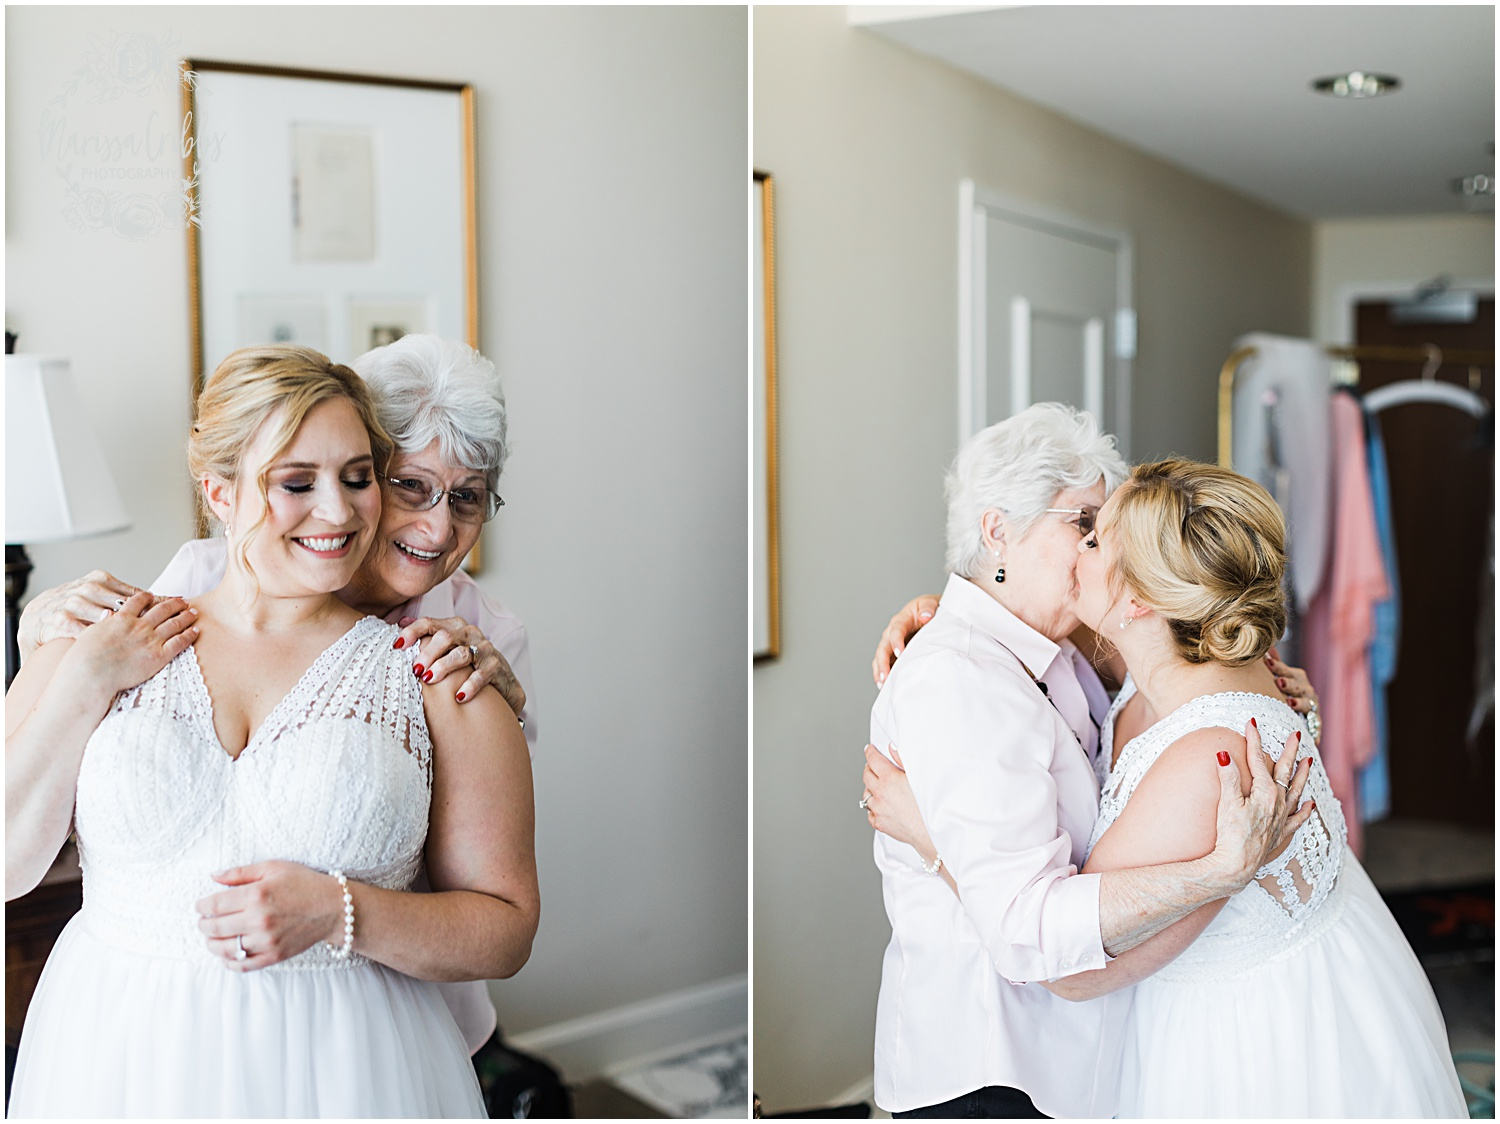 RACHEL & SCOTT MARRIED | MARISSA CRIBBS PHOTOGRAPHY_7644.jpg